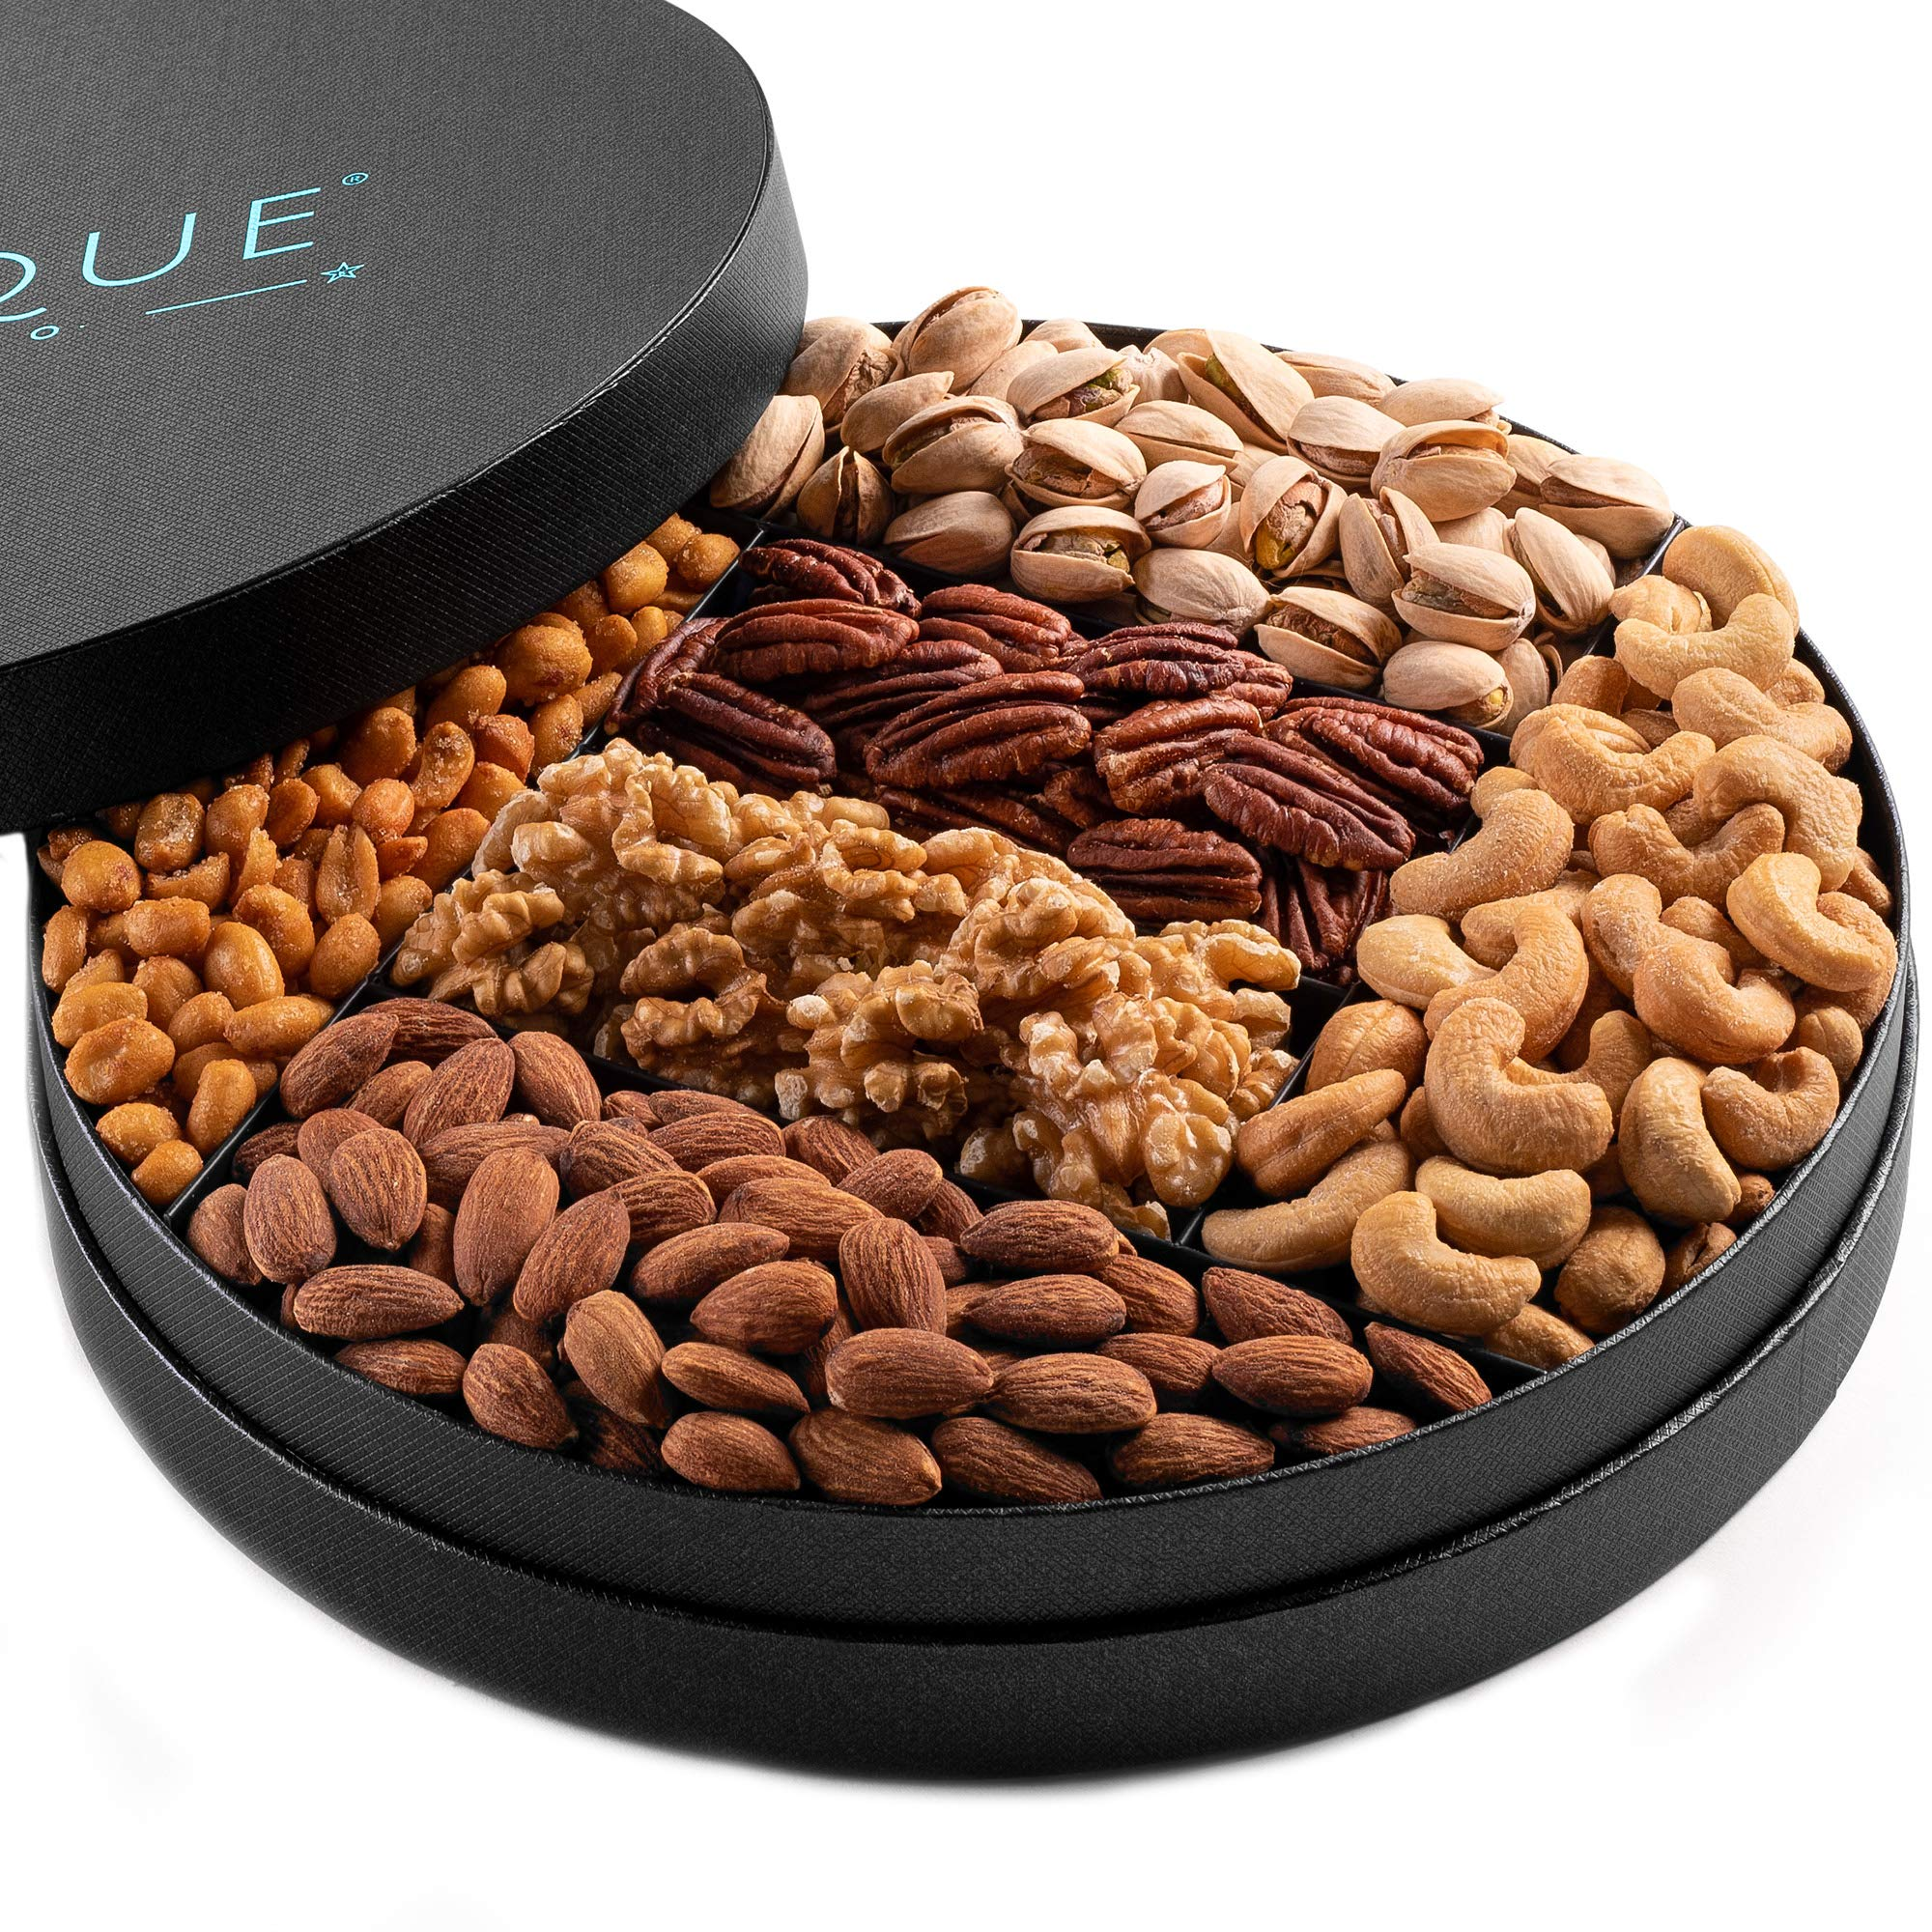 Gourmet Nut Gift Tray - 10'', Freshly Roasted Assorted Nuts for Mothers Day. Fathers Day, Holiday and Corporate Gifting, Hostess Gift